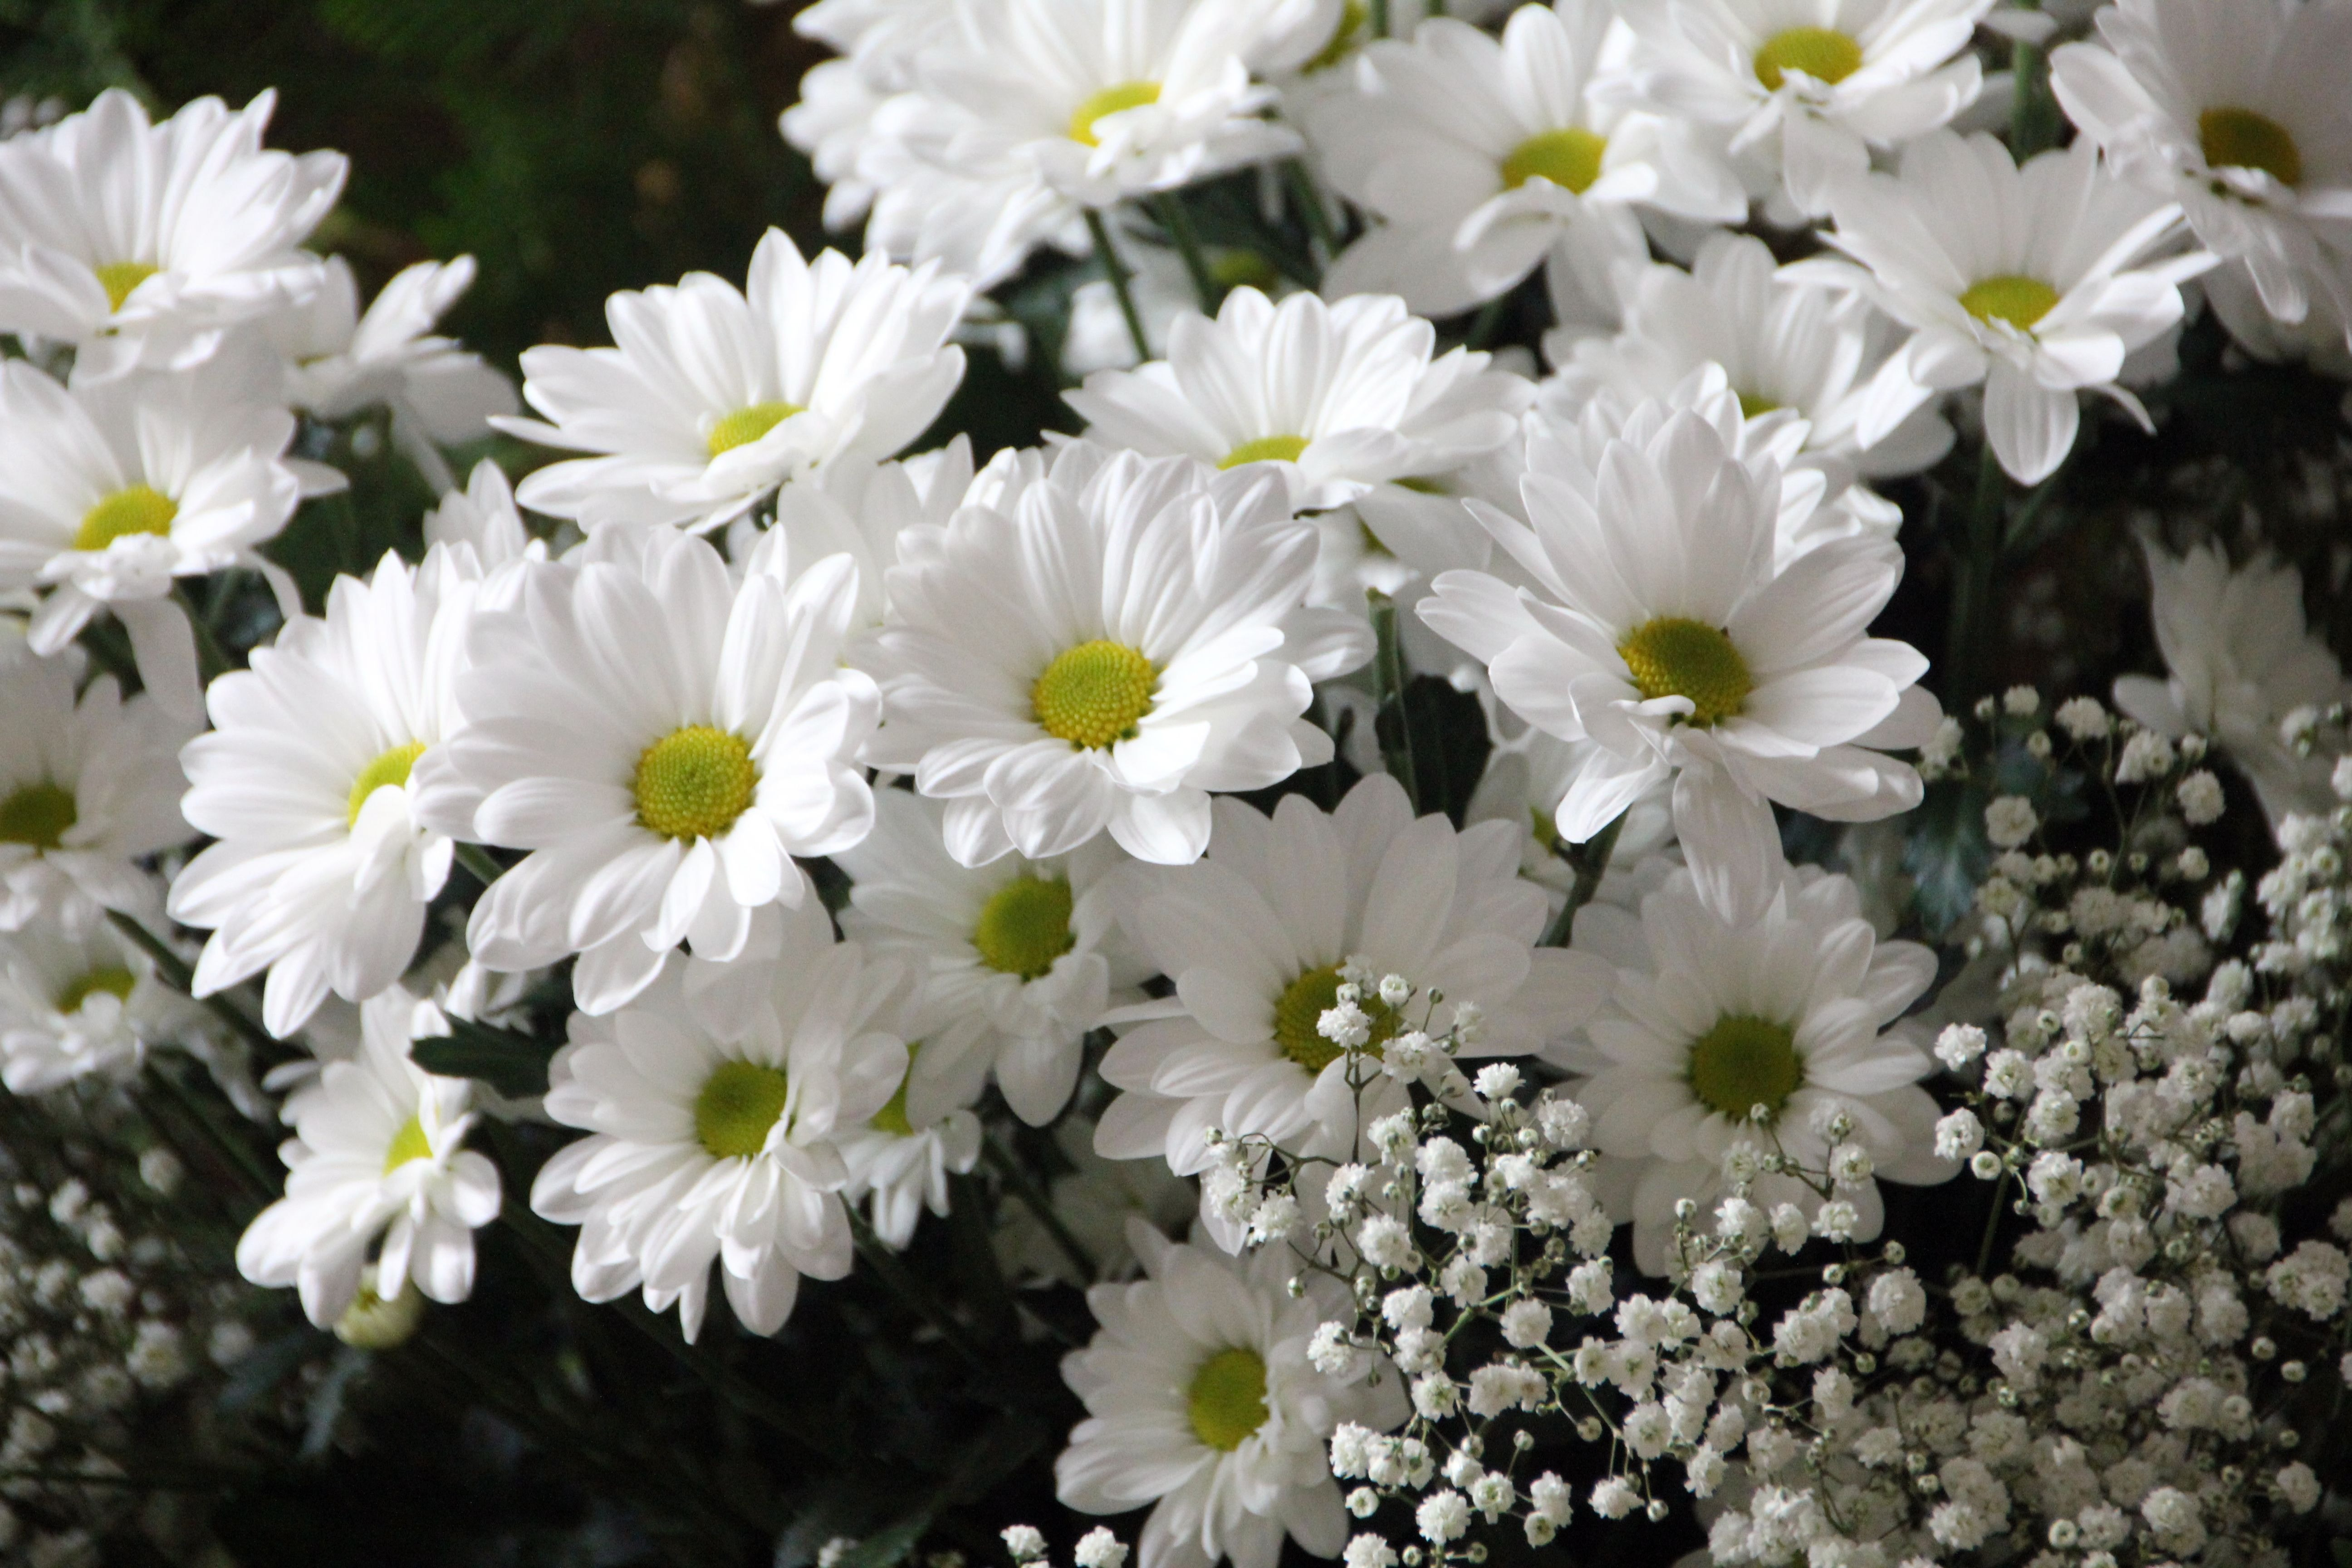 White Daisy Flowers White Baby's-Breath Flowers · Free Stock Photo